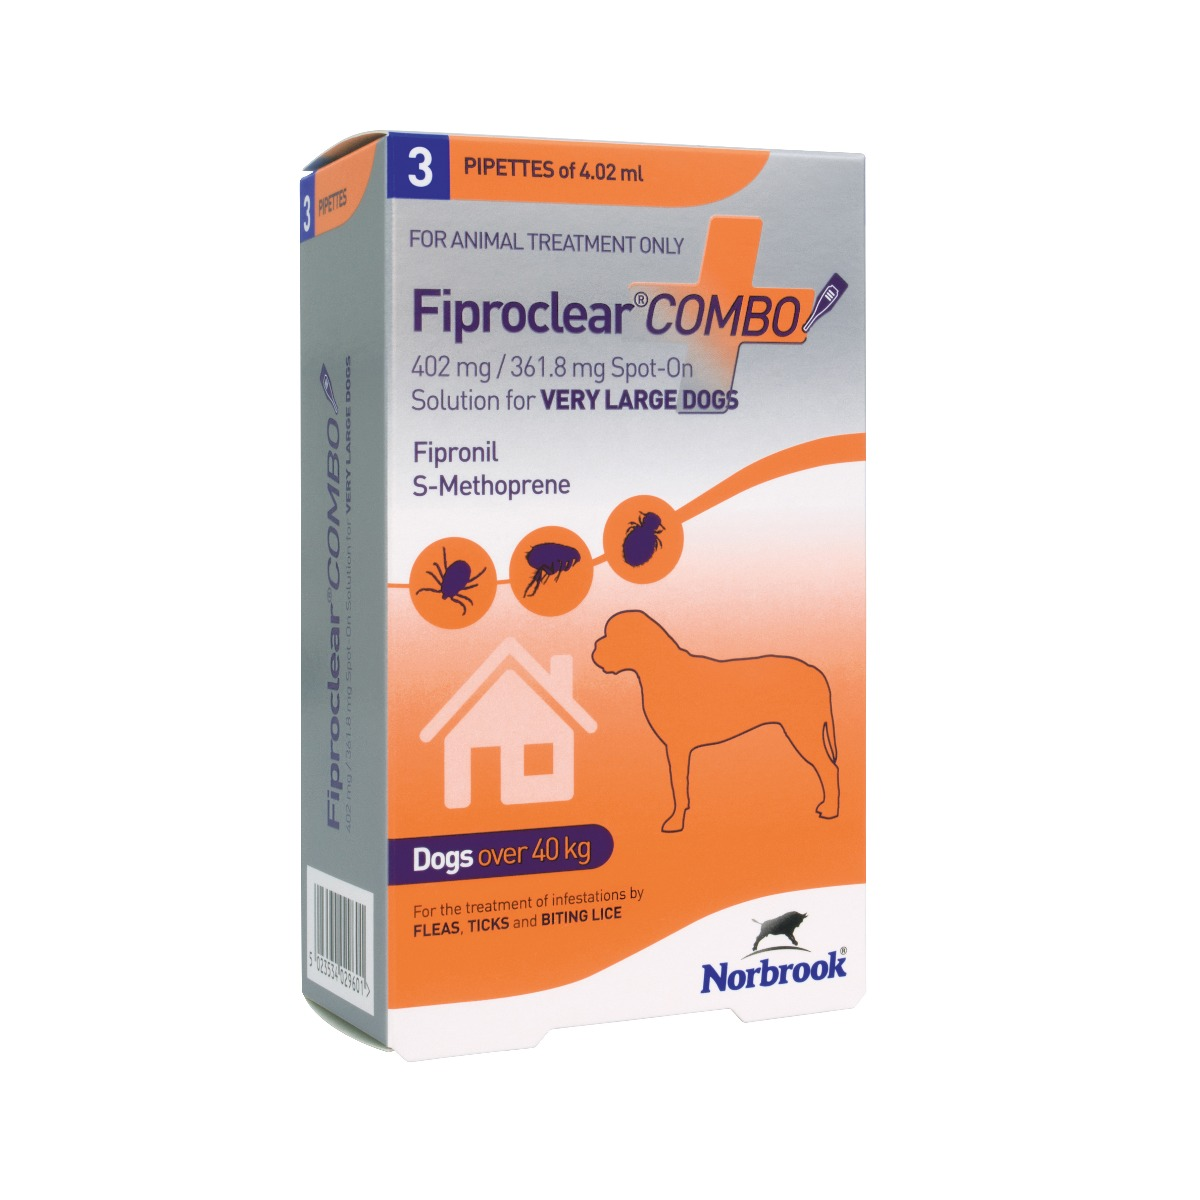 Fiproclear Combo Spot On Solution for Very Large Dogs (40-60kg) - Pack of 3 on Animed Direct